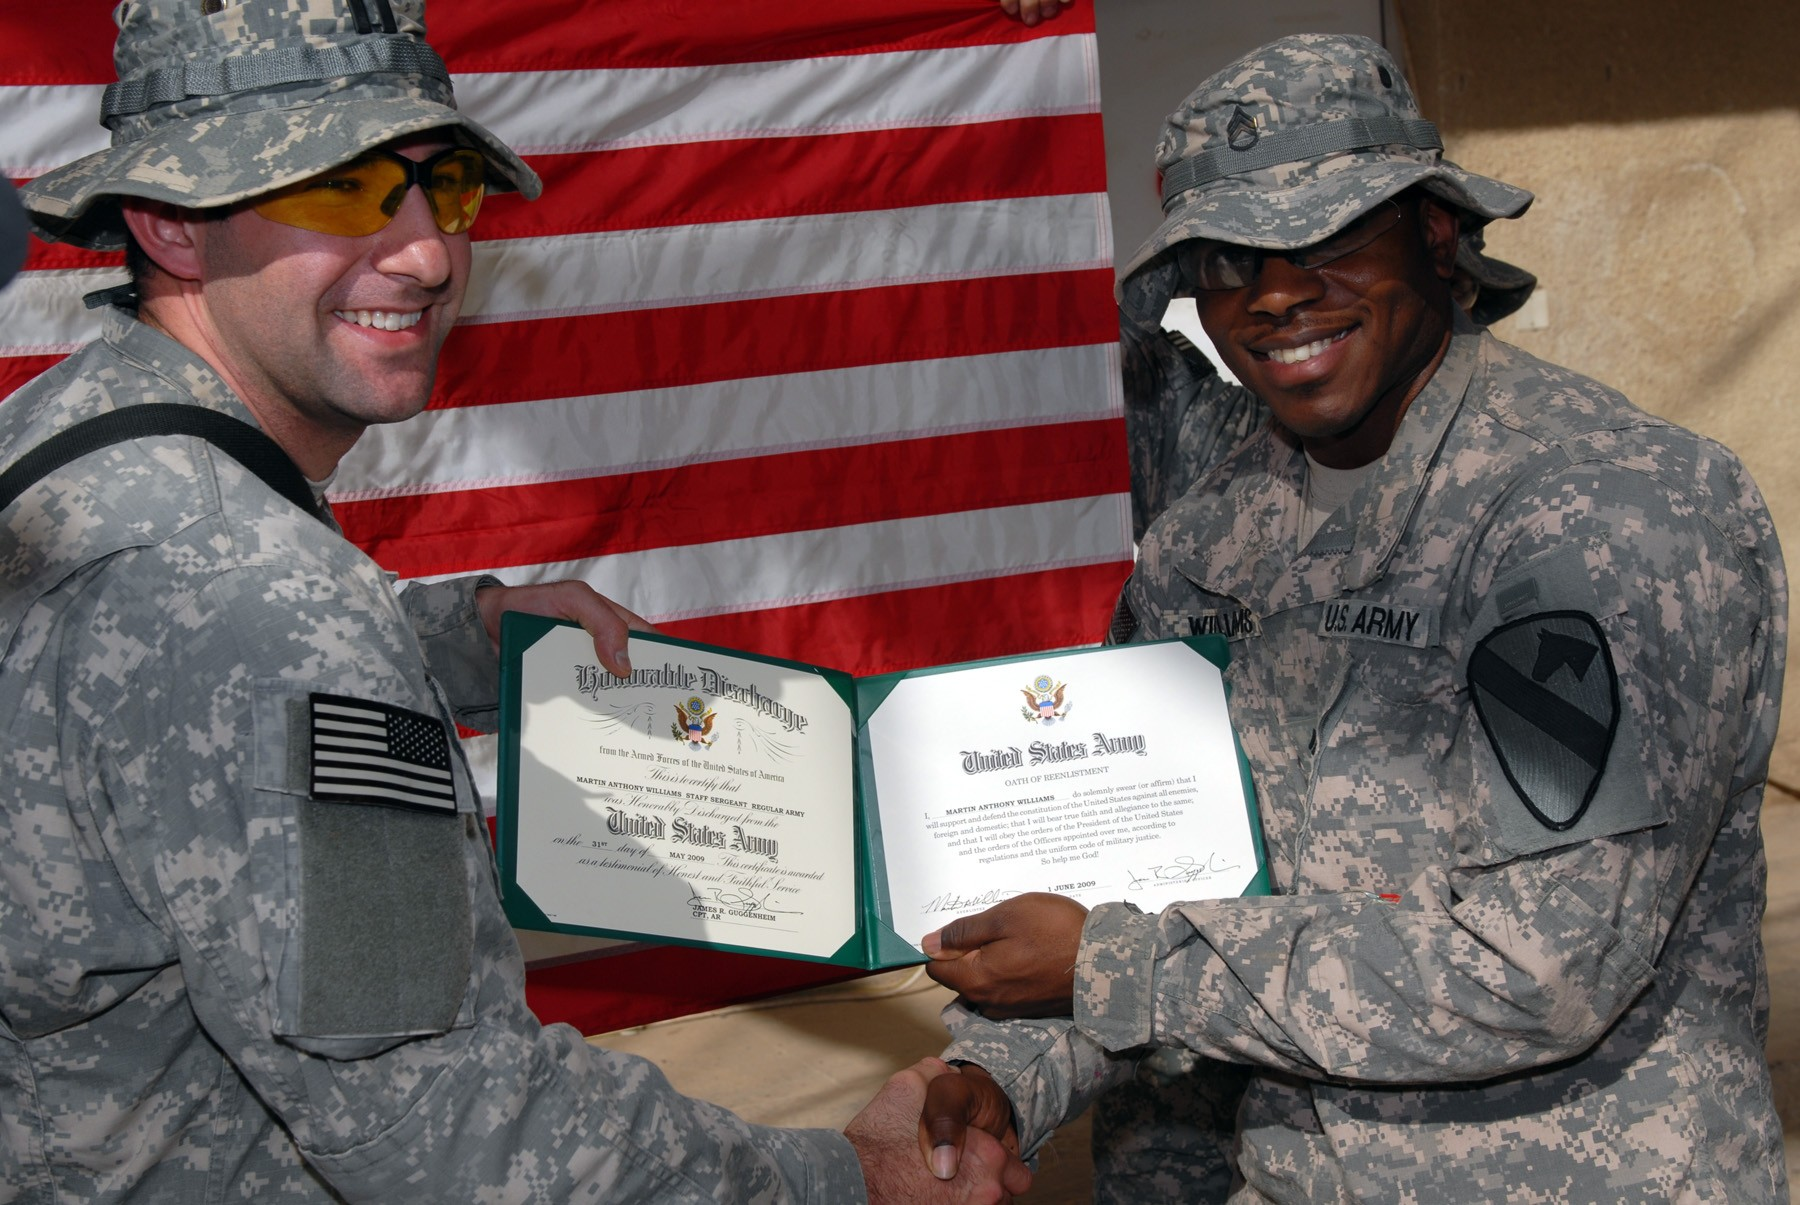 http://www.army.mil/-images/2009/06/20/42101/army.mil-42101-2009-06-20-140654.jpg